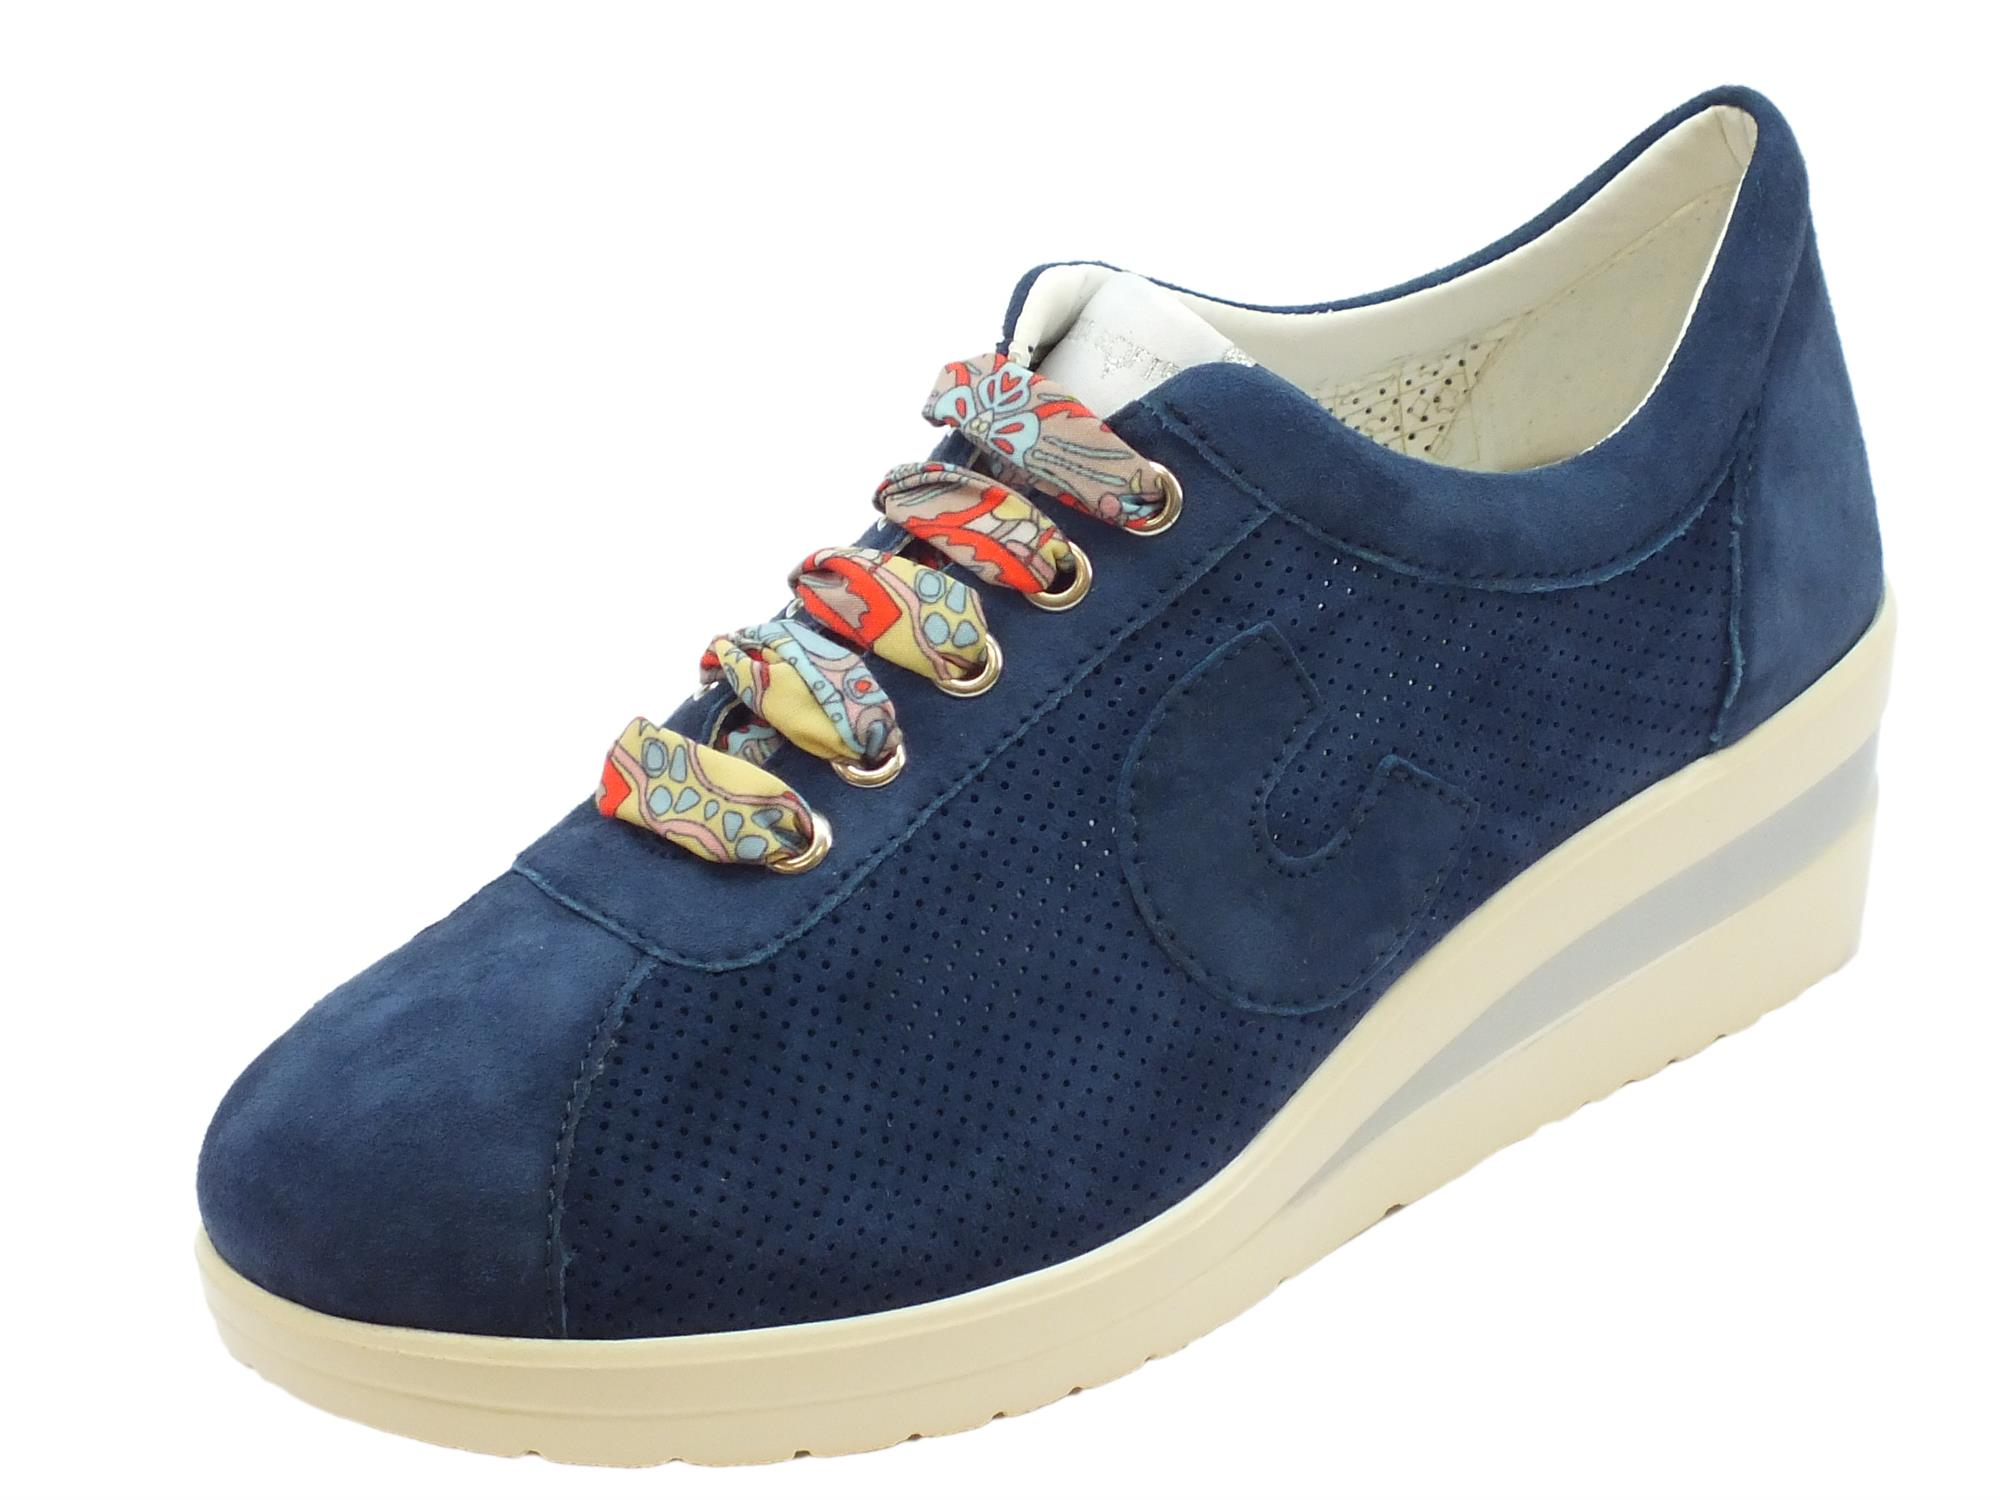 Sneakers Cinzia Soft donna nabuk blue zeppa media - Vitiello Calzature 53408bdcc84